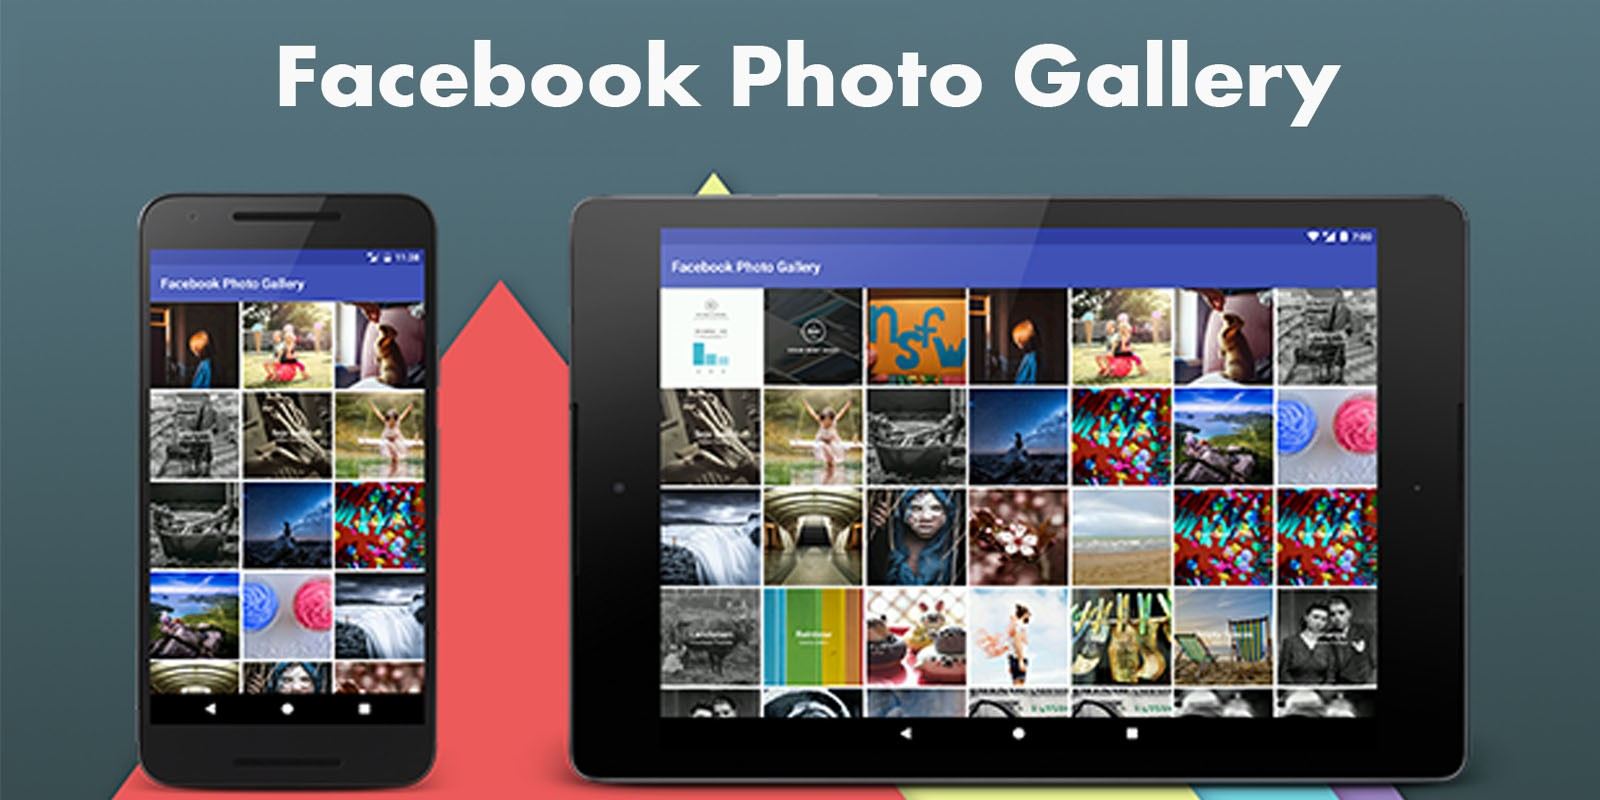 Facebook Photo Gallery - Android Source Code